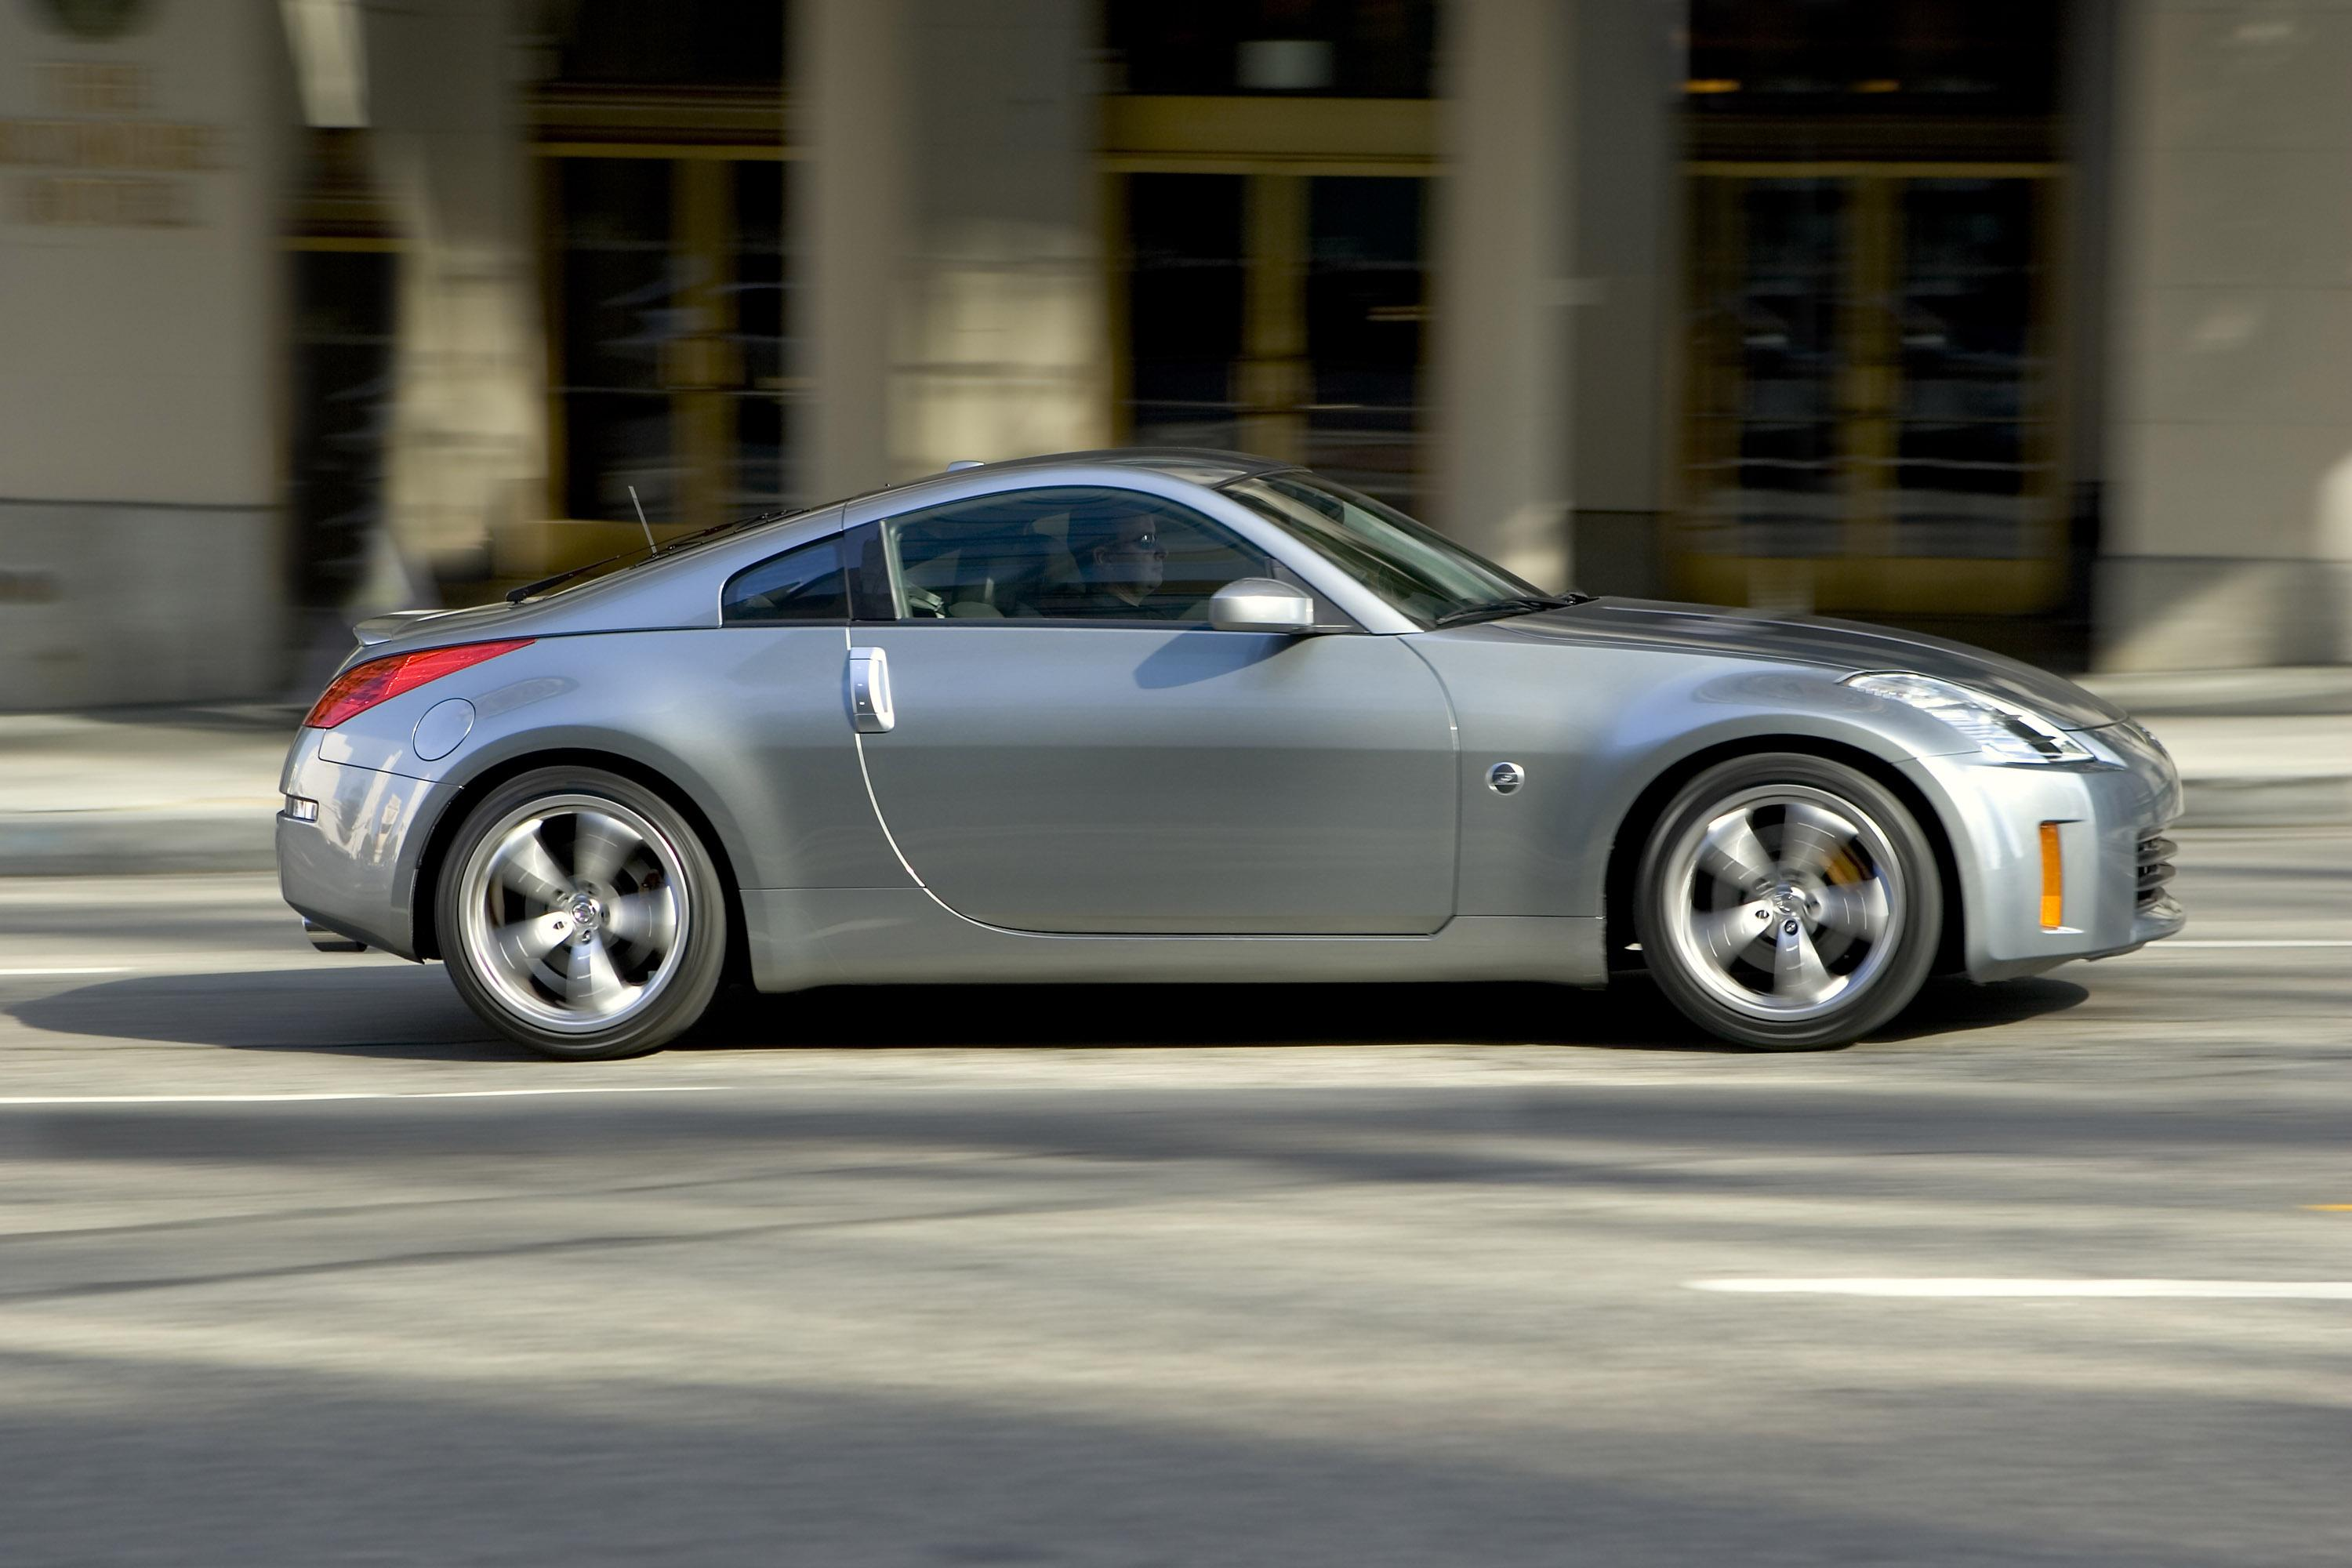 2007 Nissan 350Z | Top Speed. »